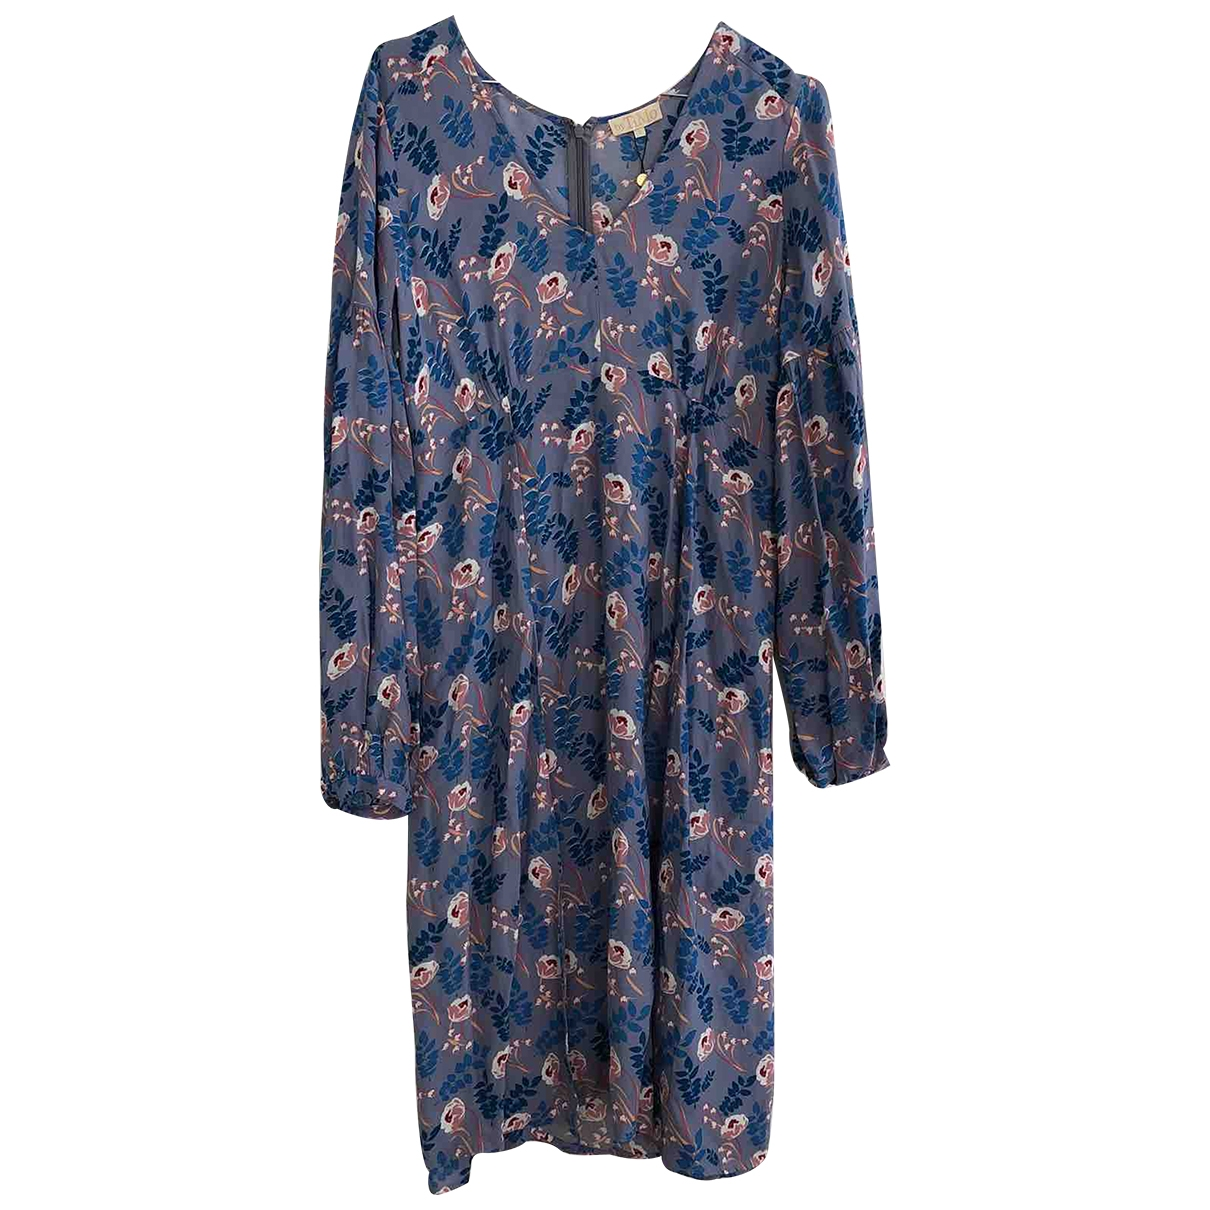 By Timo \N Blue dress for Women S International